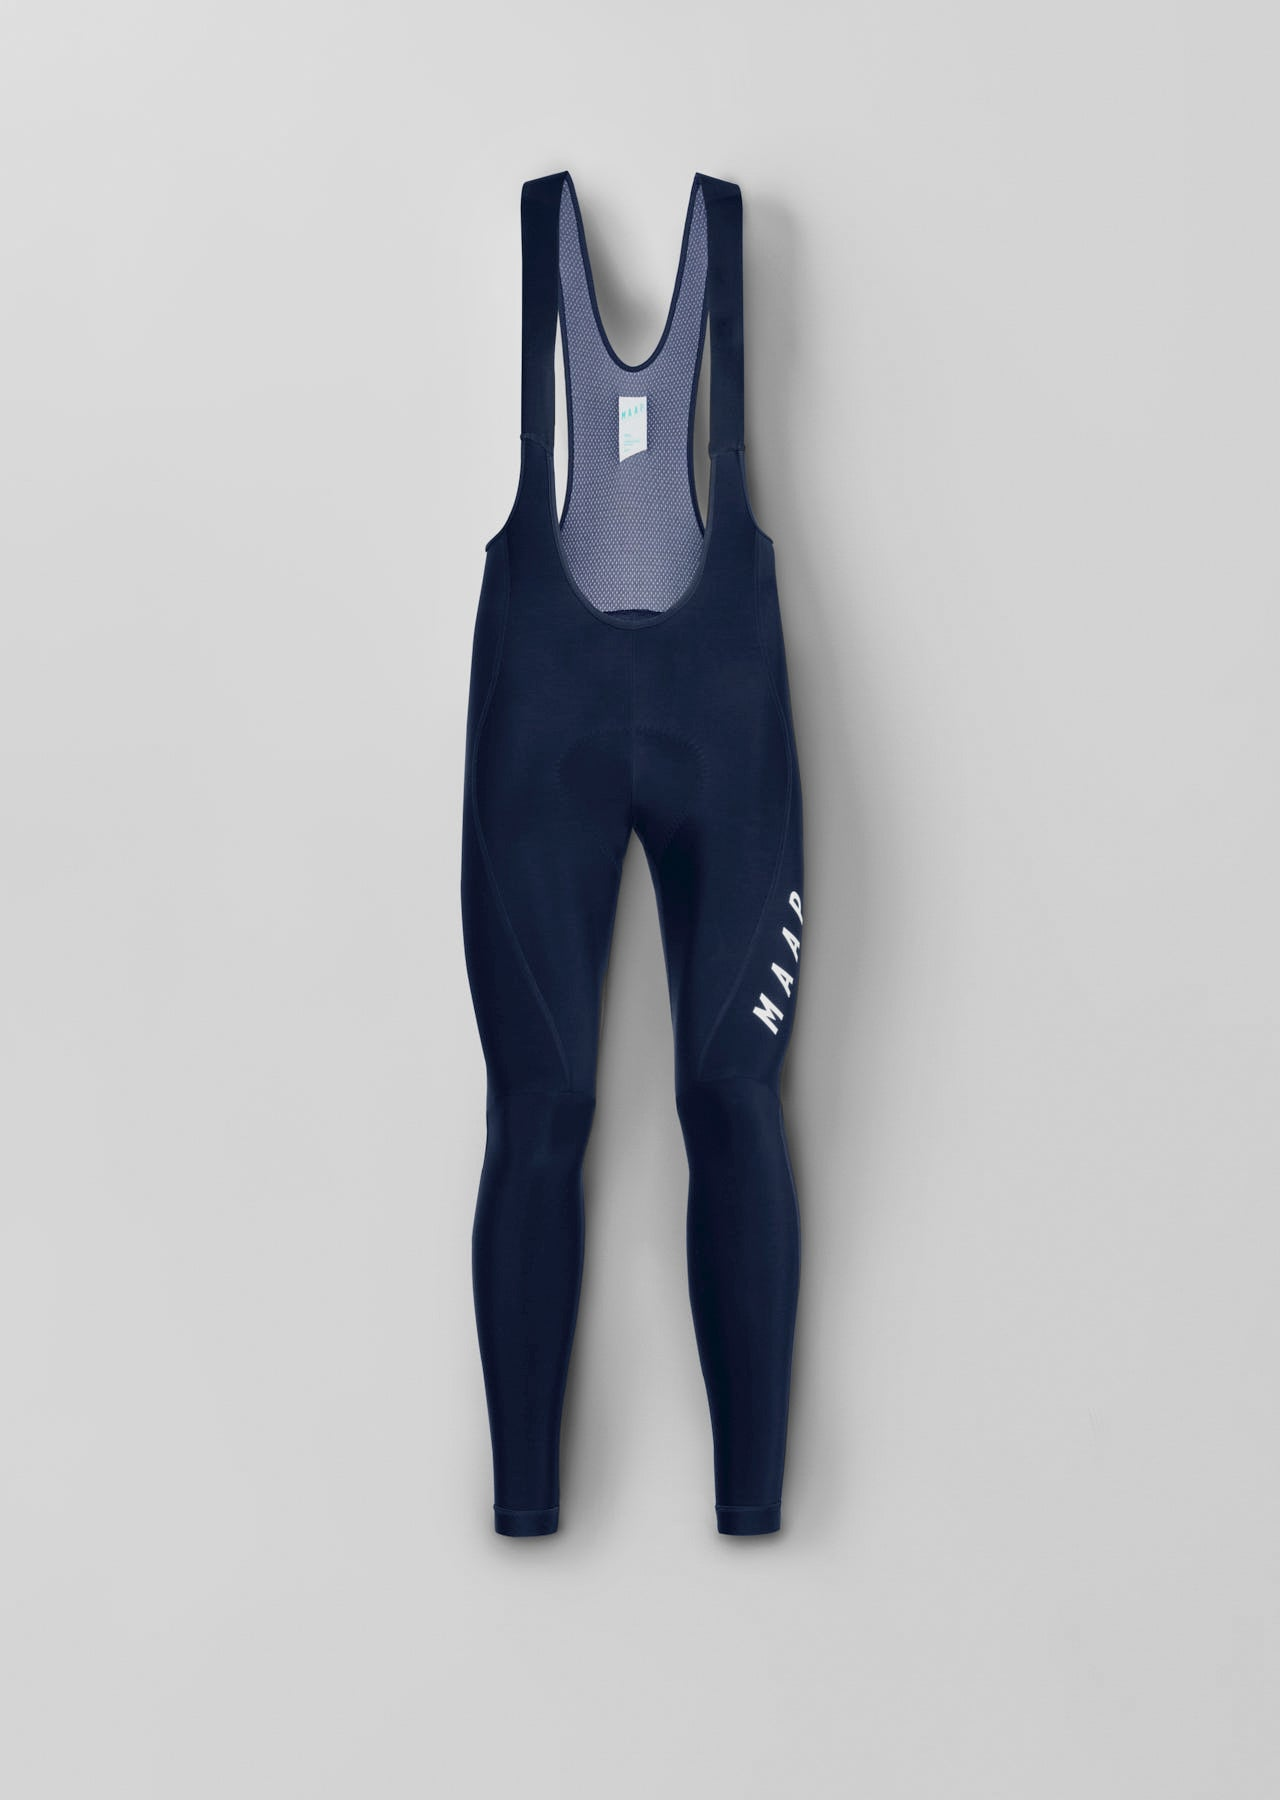 Team Thermal Bib Tights